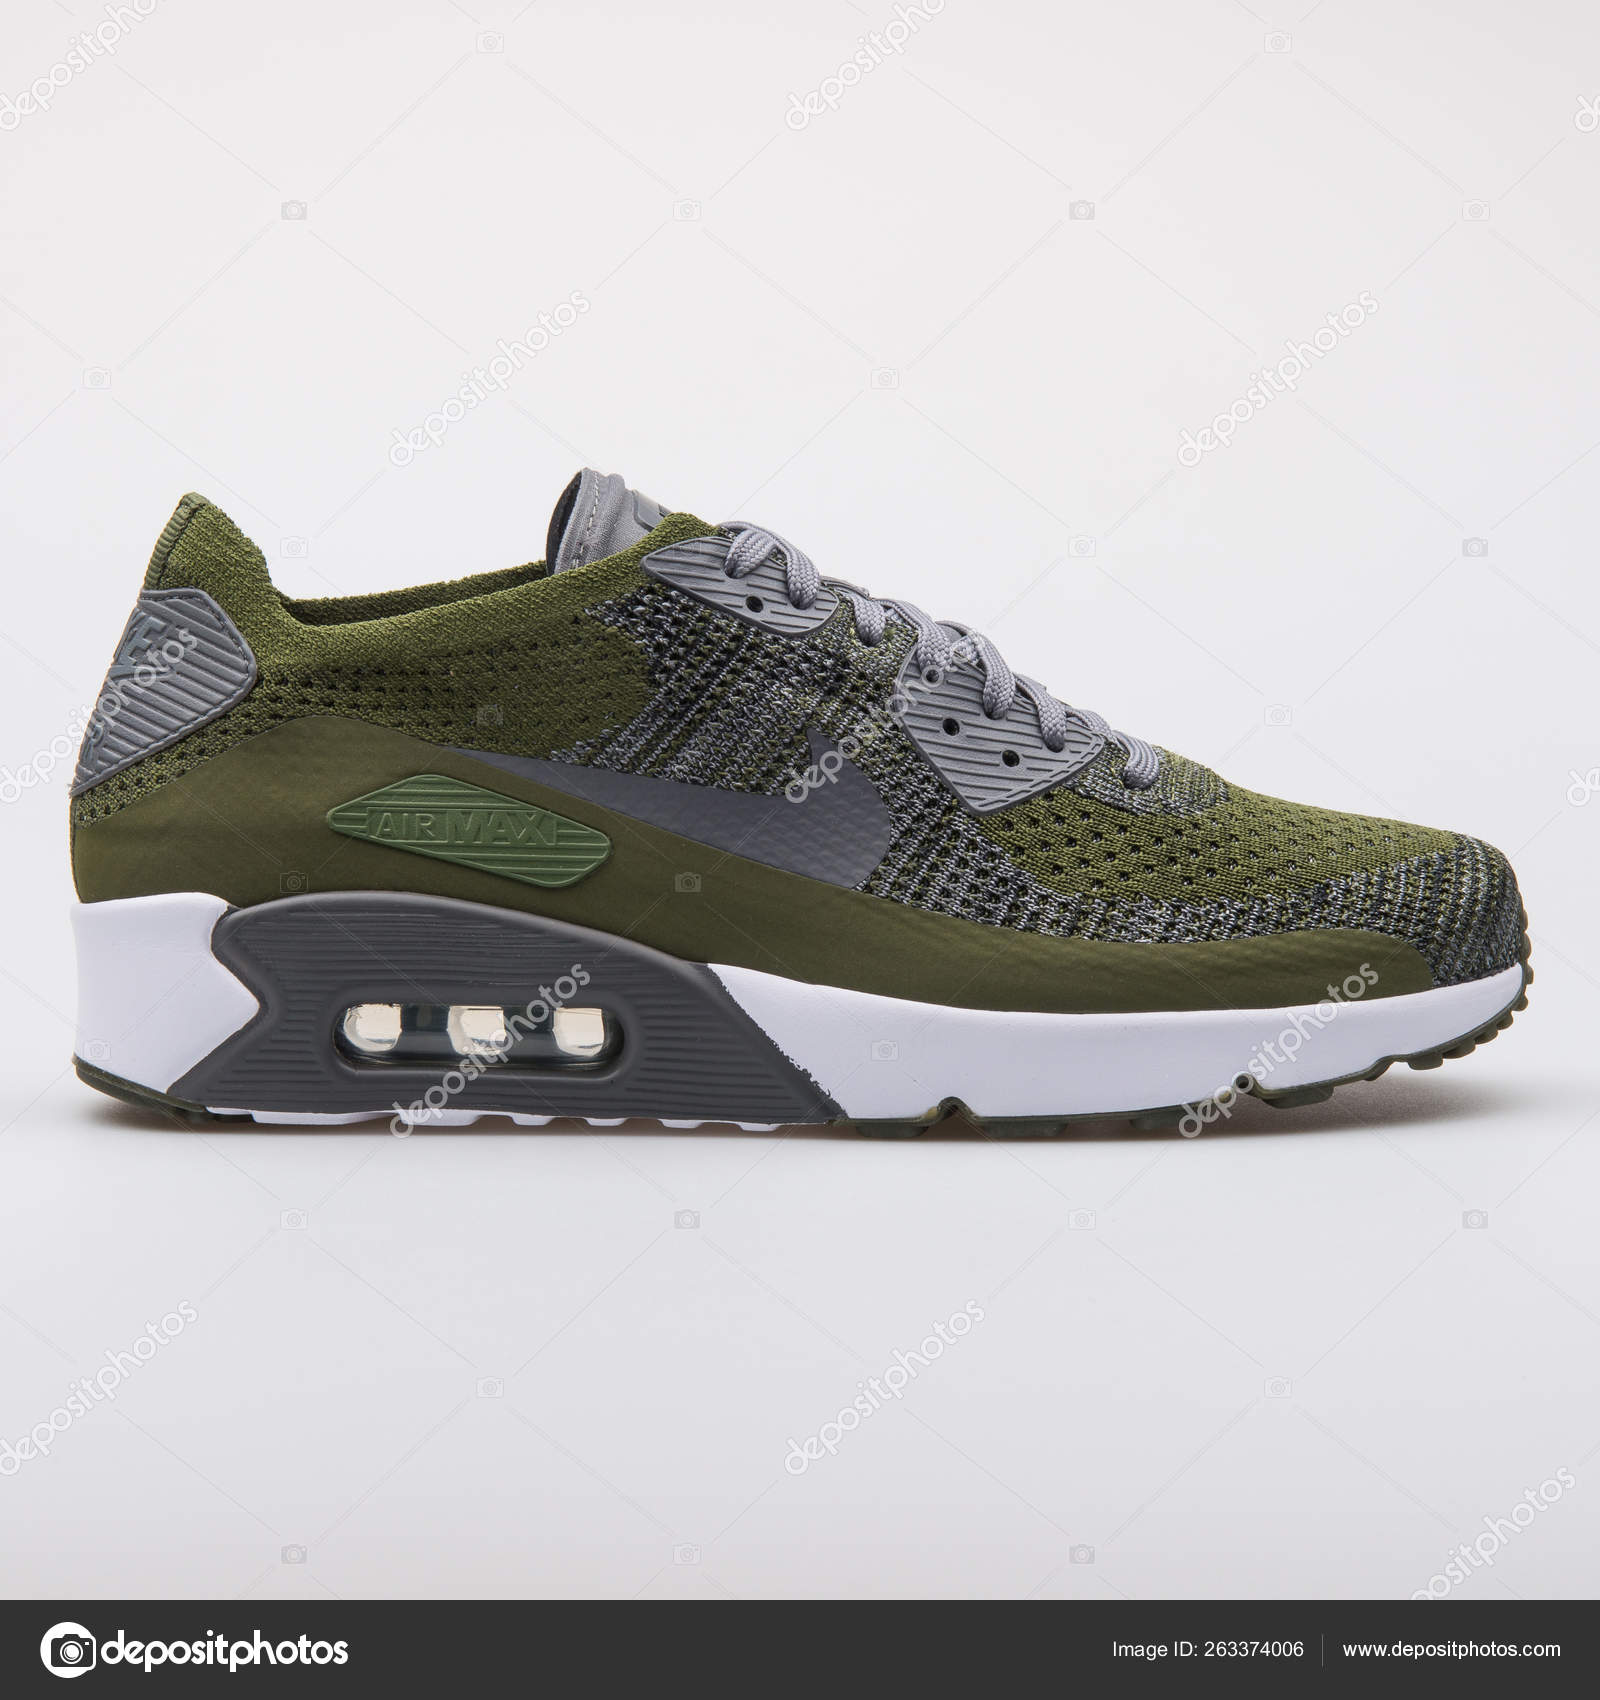 Nike Air Max 90 Ultra 2.0 Flyknit zapatillas verdes y grises